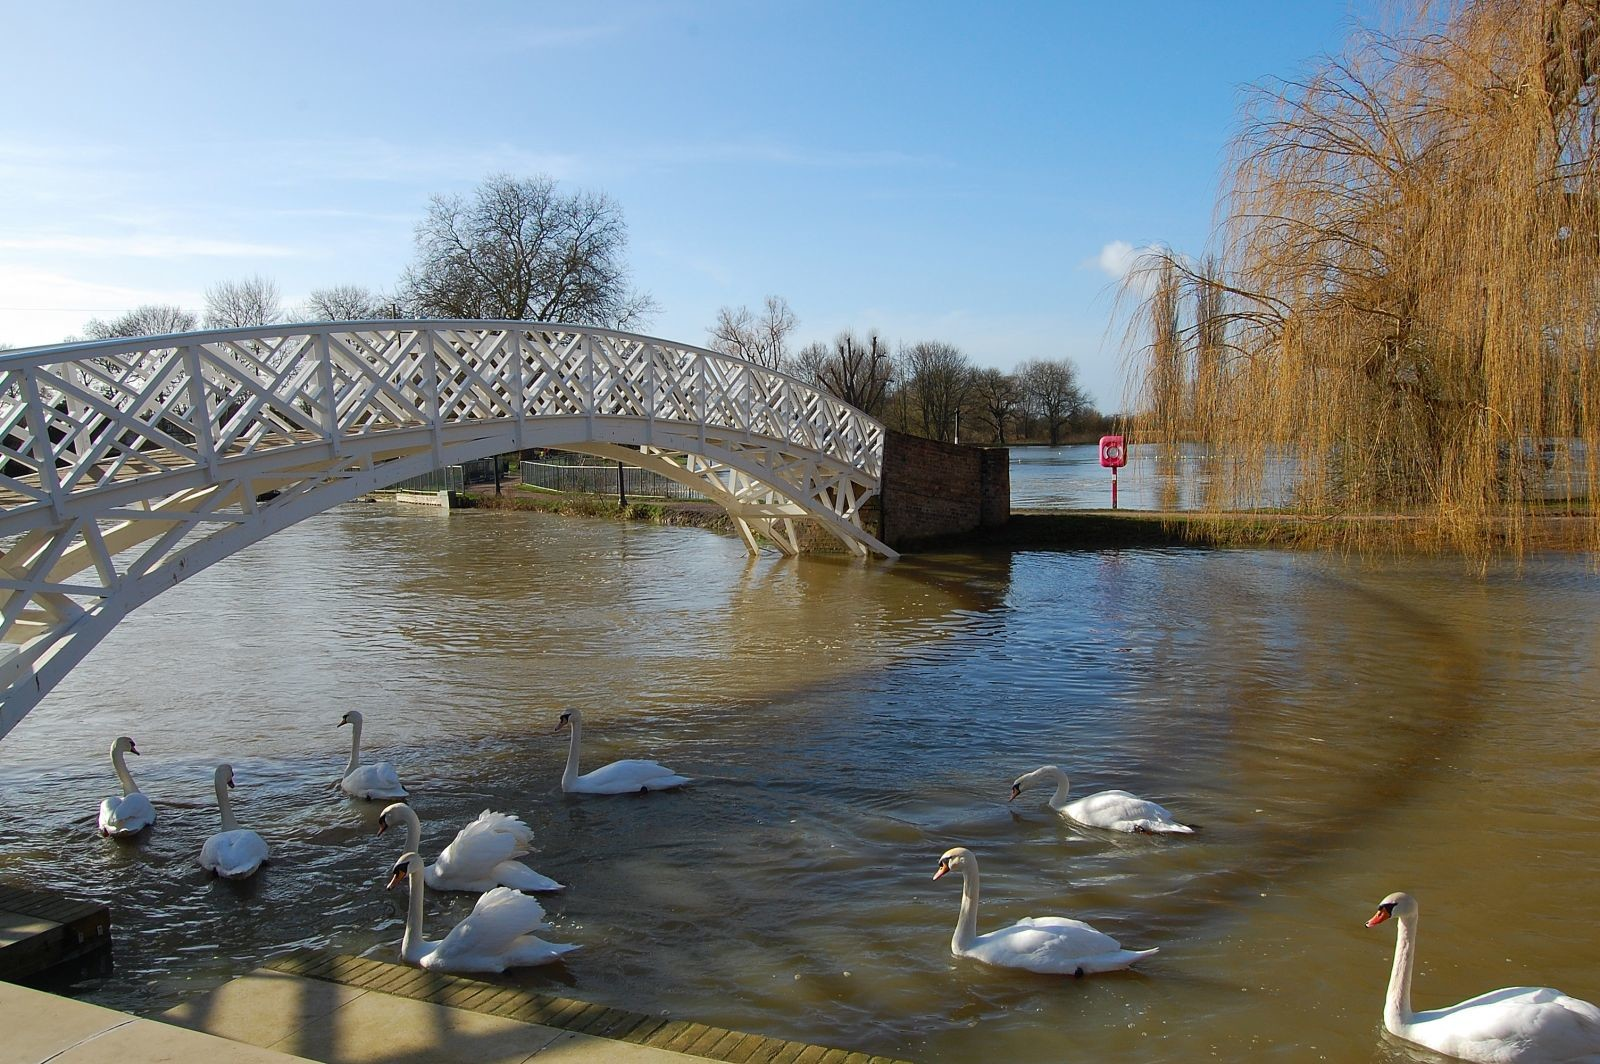 Great Ouse in flood with Chinese Bridge.